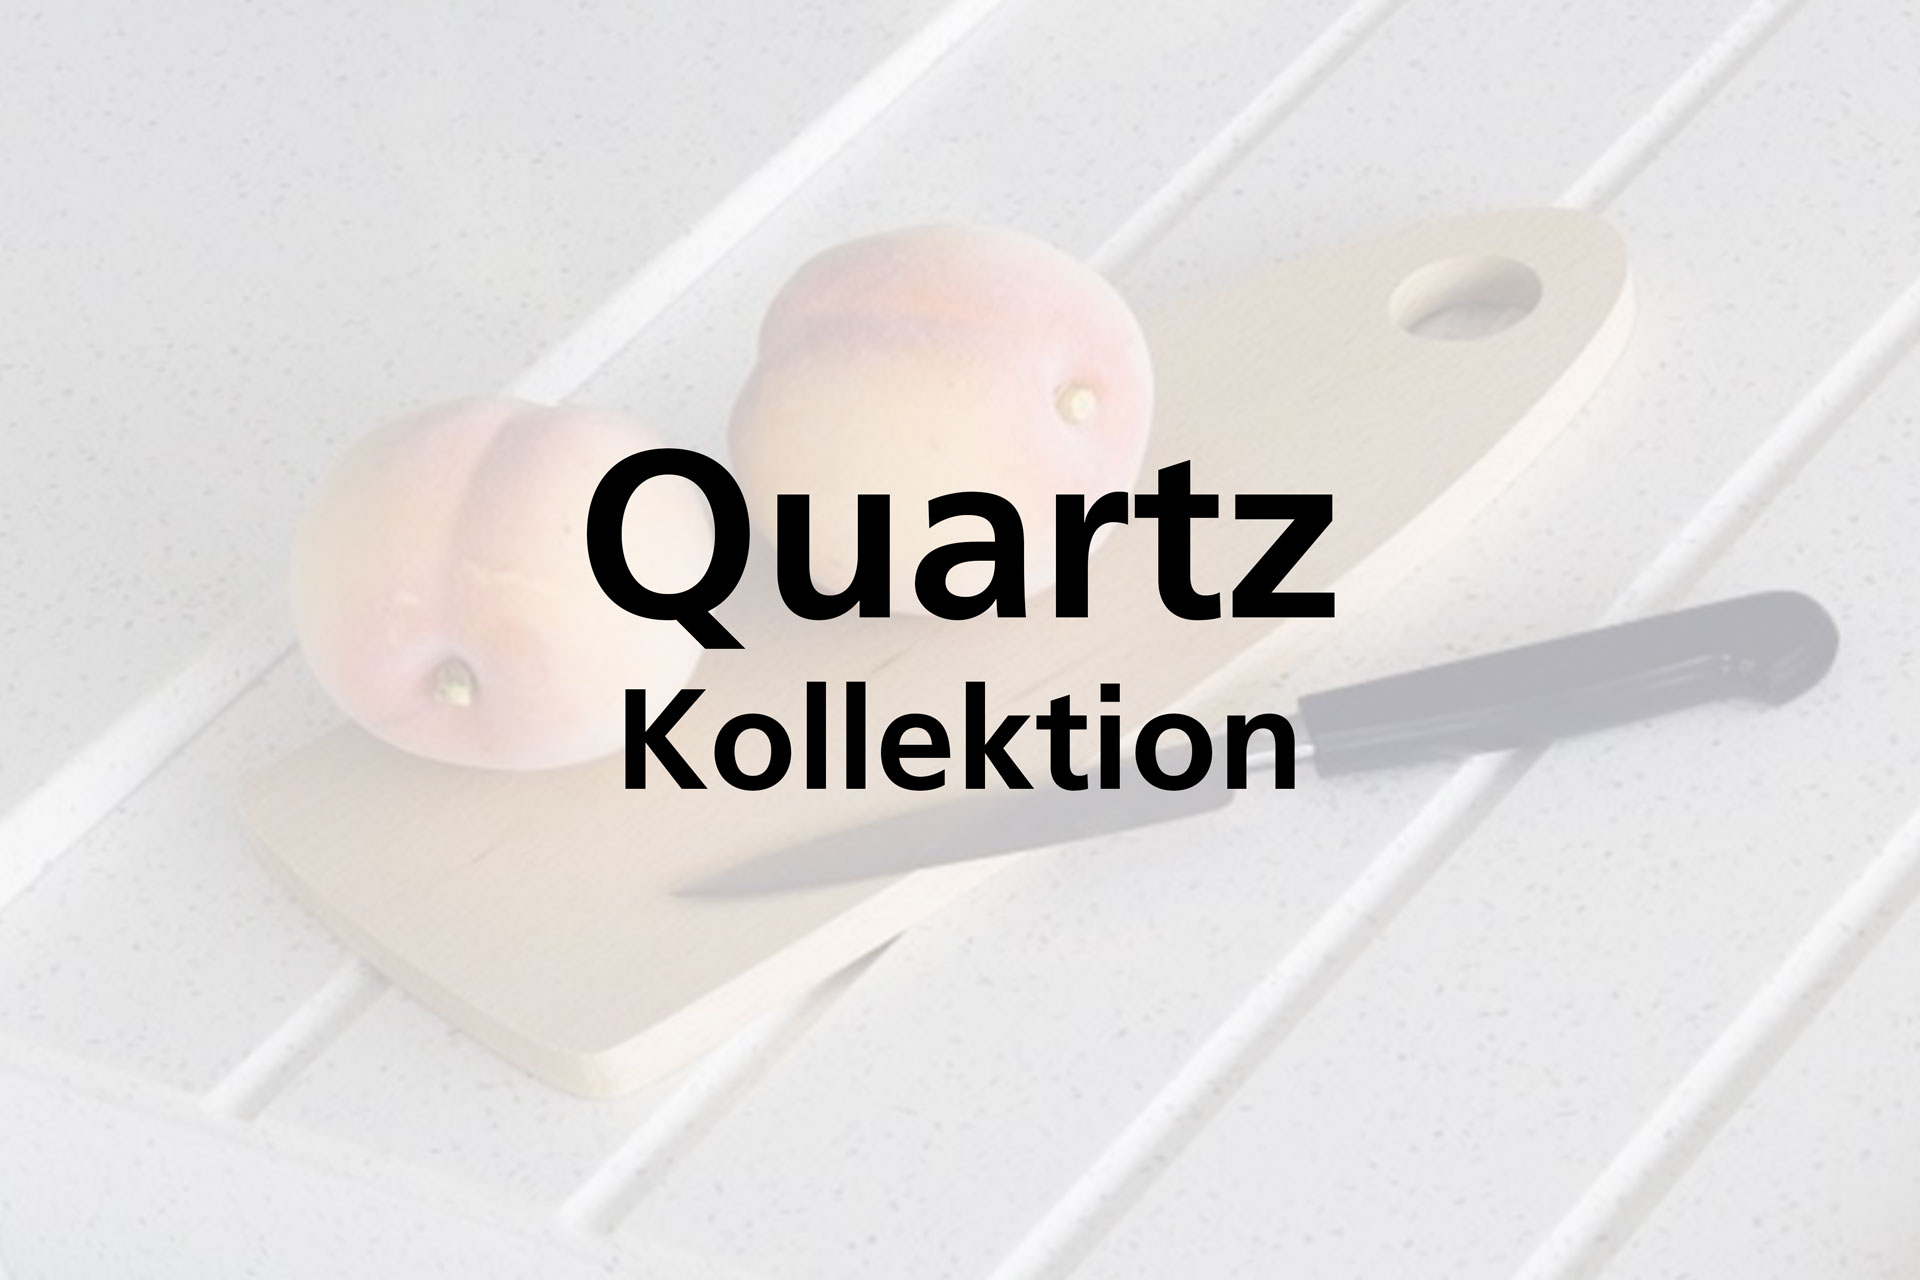 quartz_kollektion